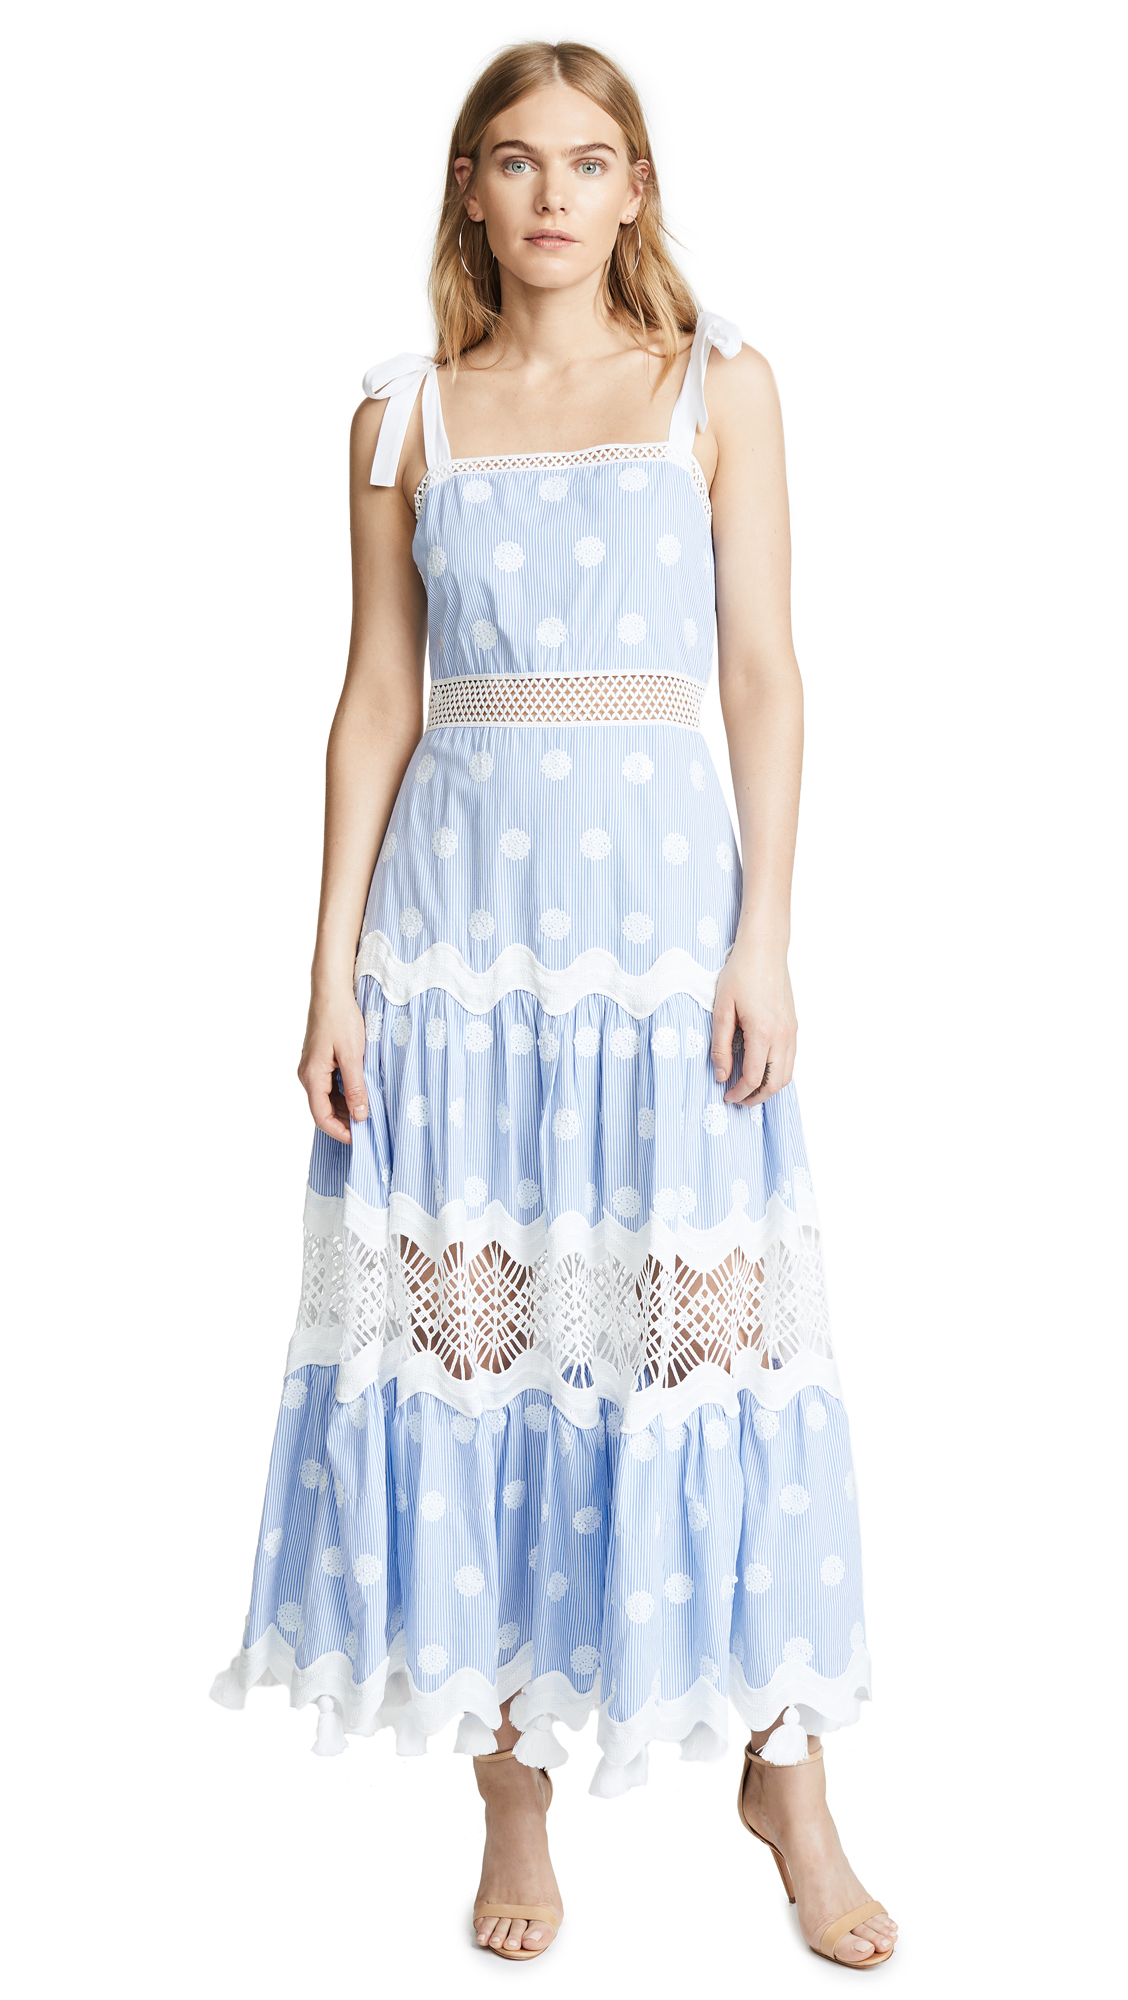 4d5c4bfba9b Alexis Ada Striped Embroidered Maxi Dress In Blue White Stripes ...